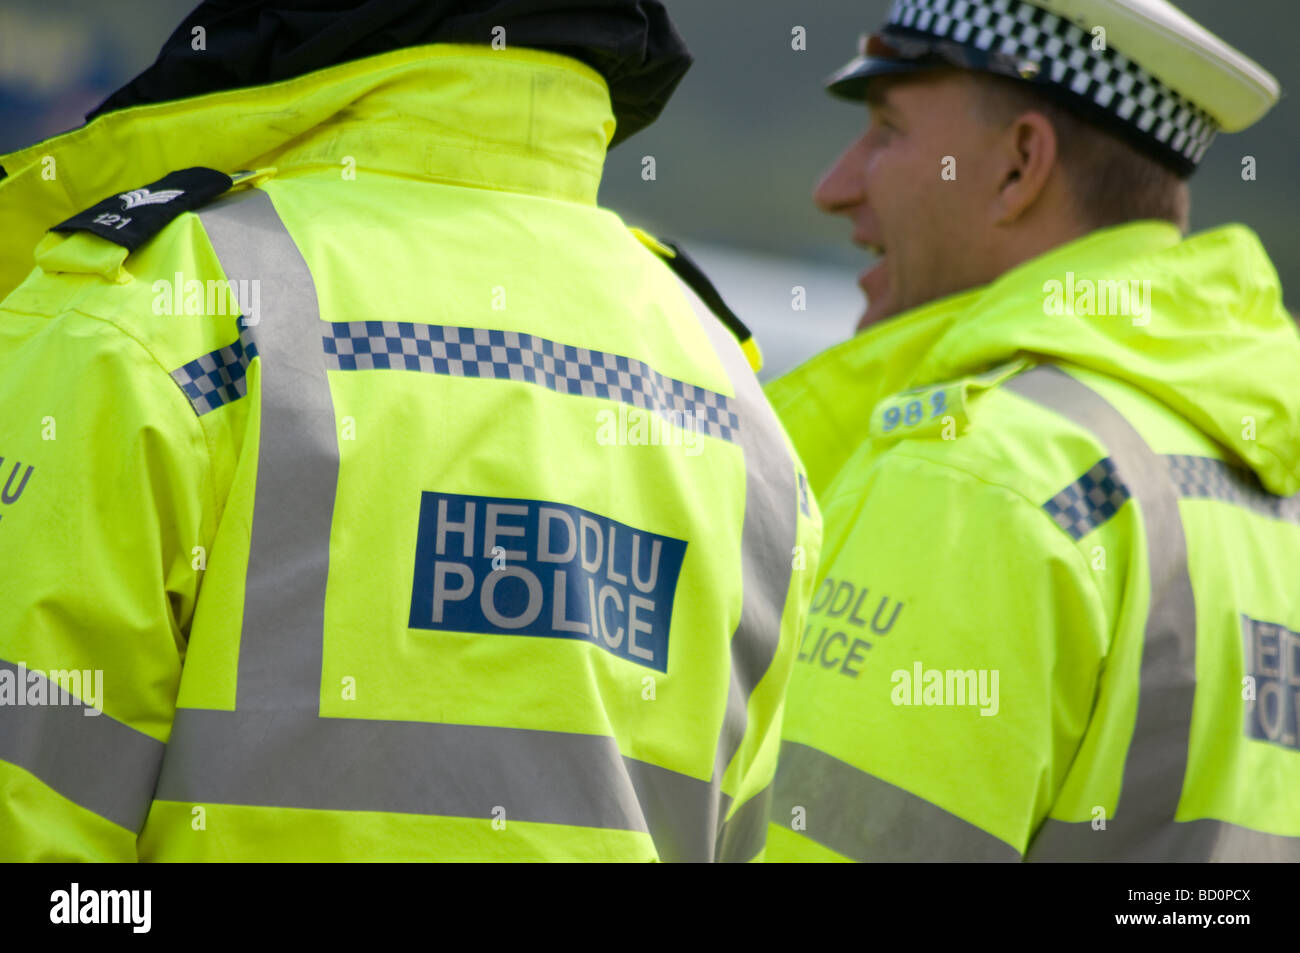 Traffic officers from Dyfed Powys Police - Stock Image